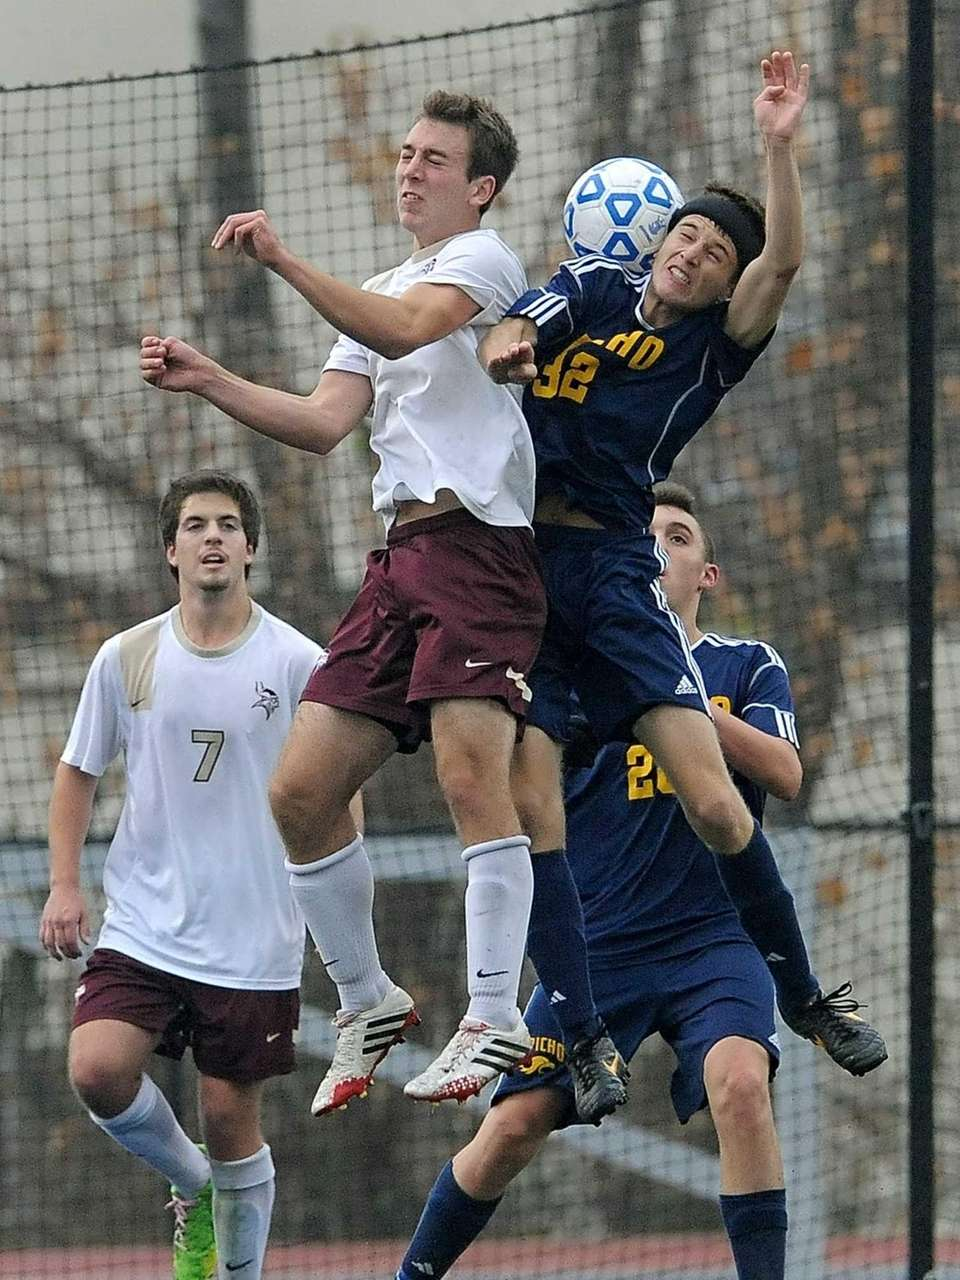 Jericho's Alex Medolla, right, and Pittsford Mendon's John